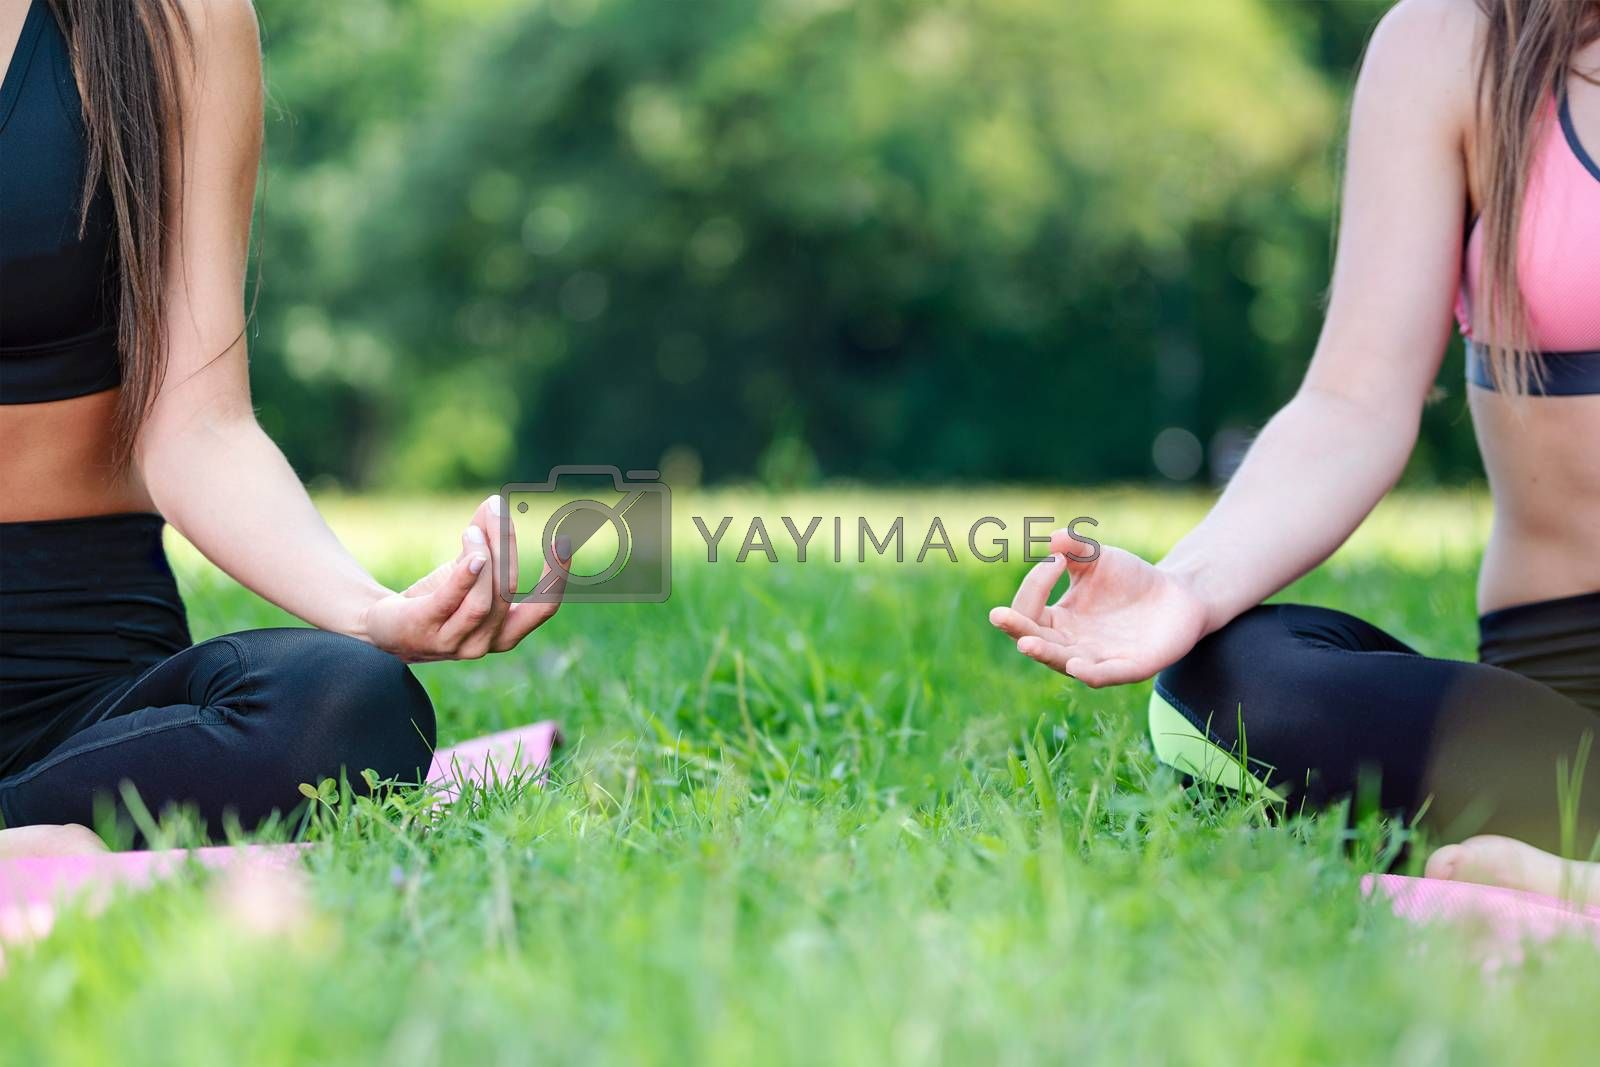 Two women doing yoga meditation in a lotus pose outdoors in a park on a sunny day in close-up (copy space)